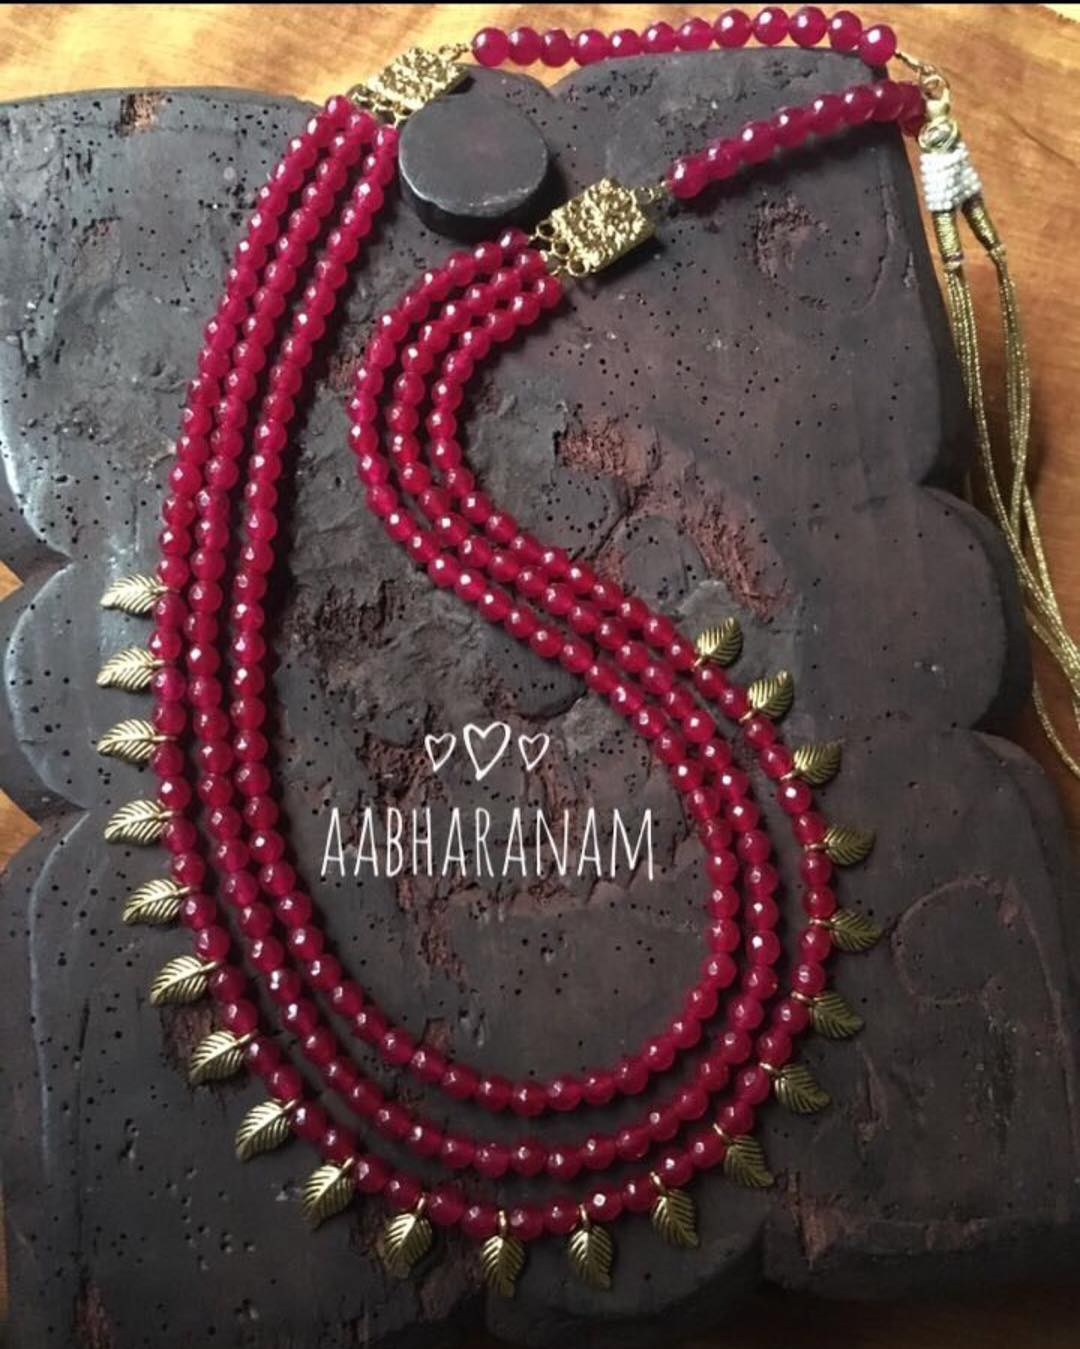 Multilayer Necklace From Aabharanam